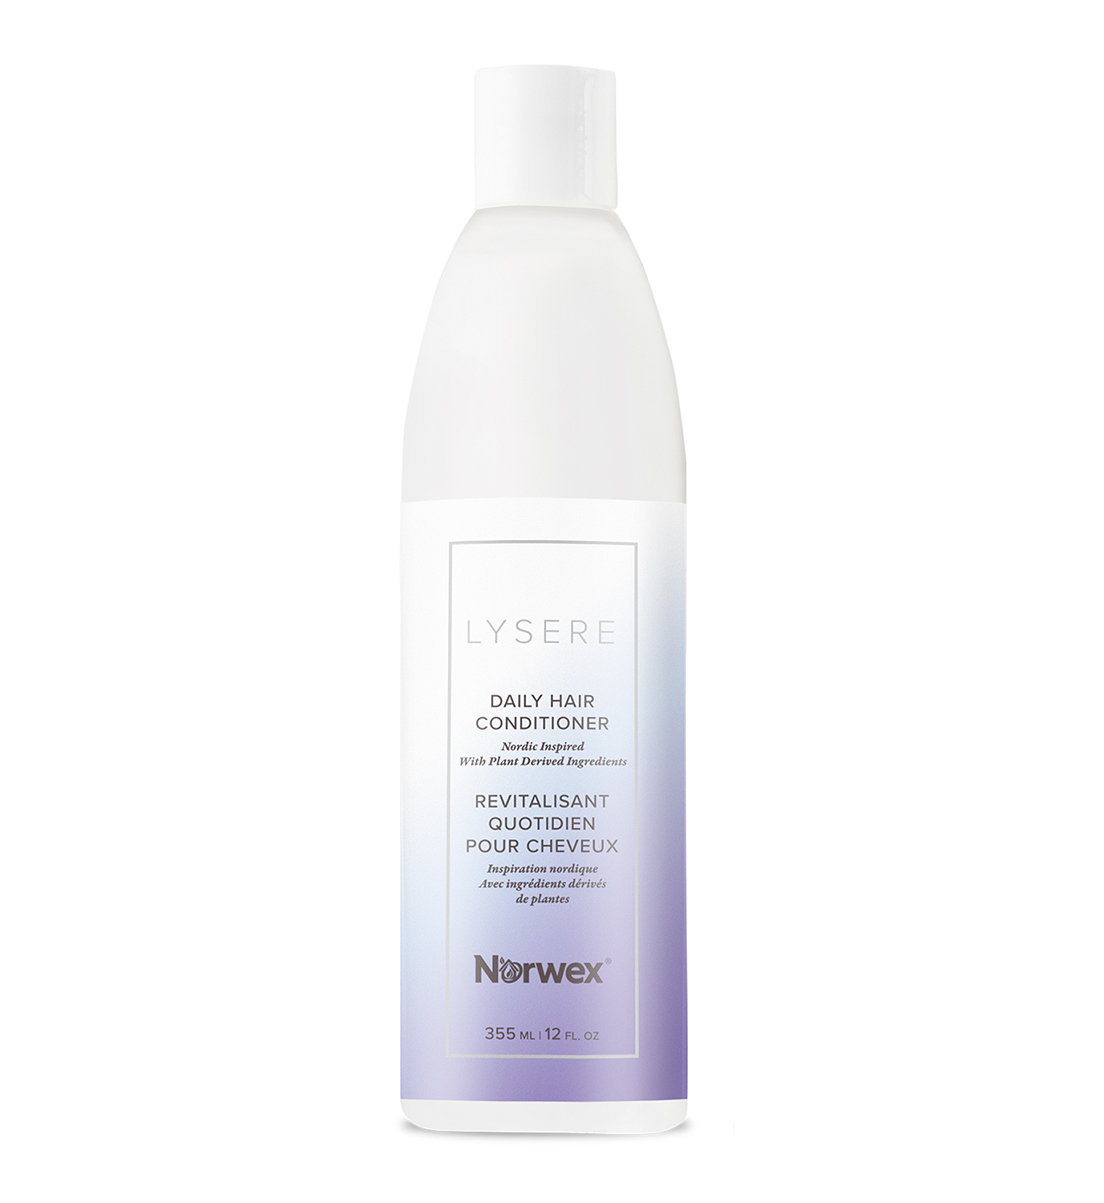 Lysere Daily Hair Conditioner